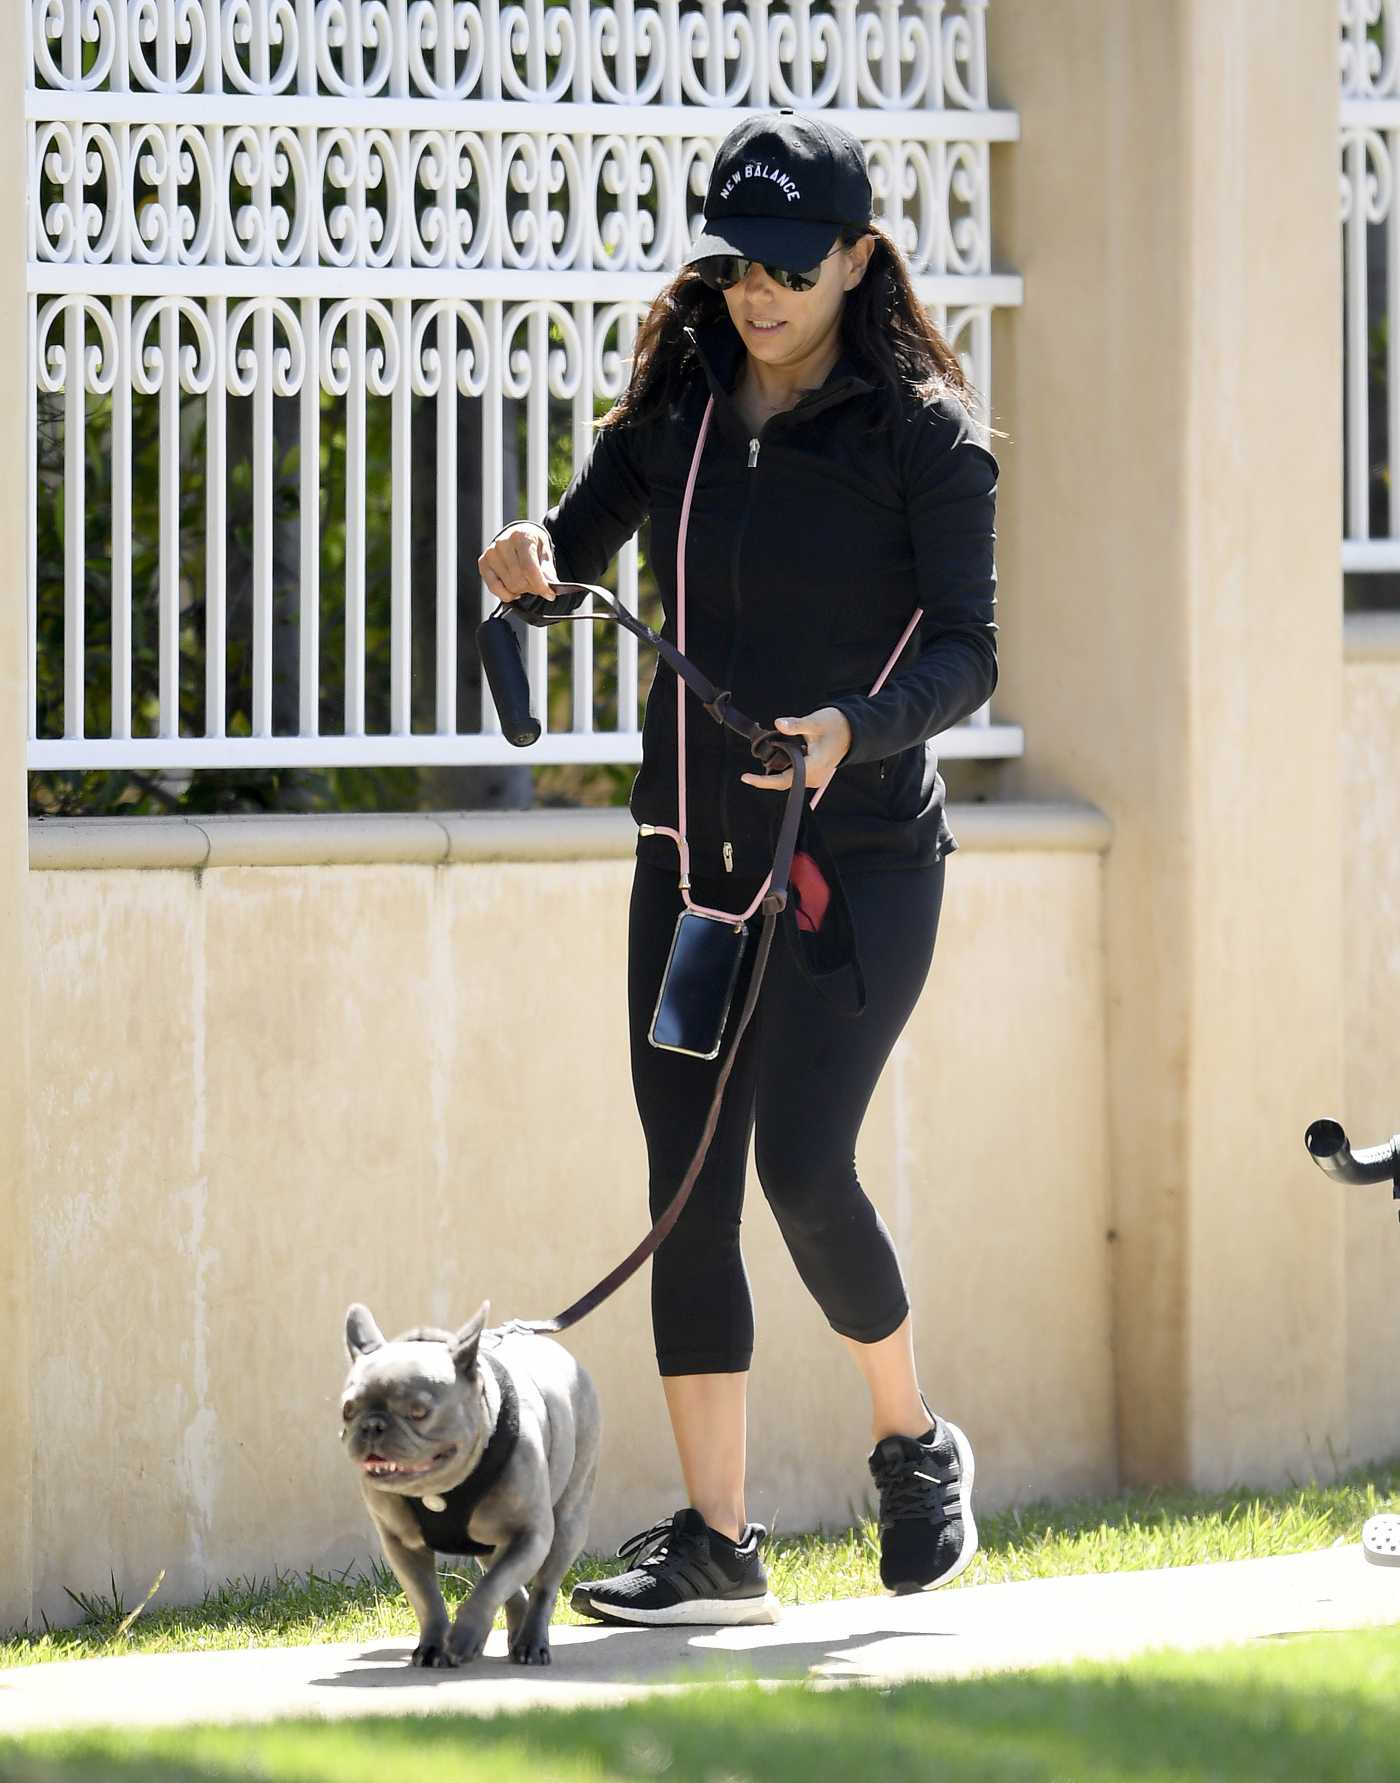 Eva Longoria in a Black Cap Spends the Day at the Park with Her Family in Beverly Hills 06/08/2020